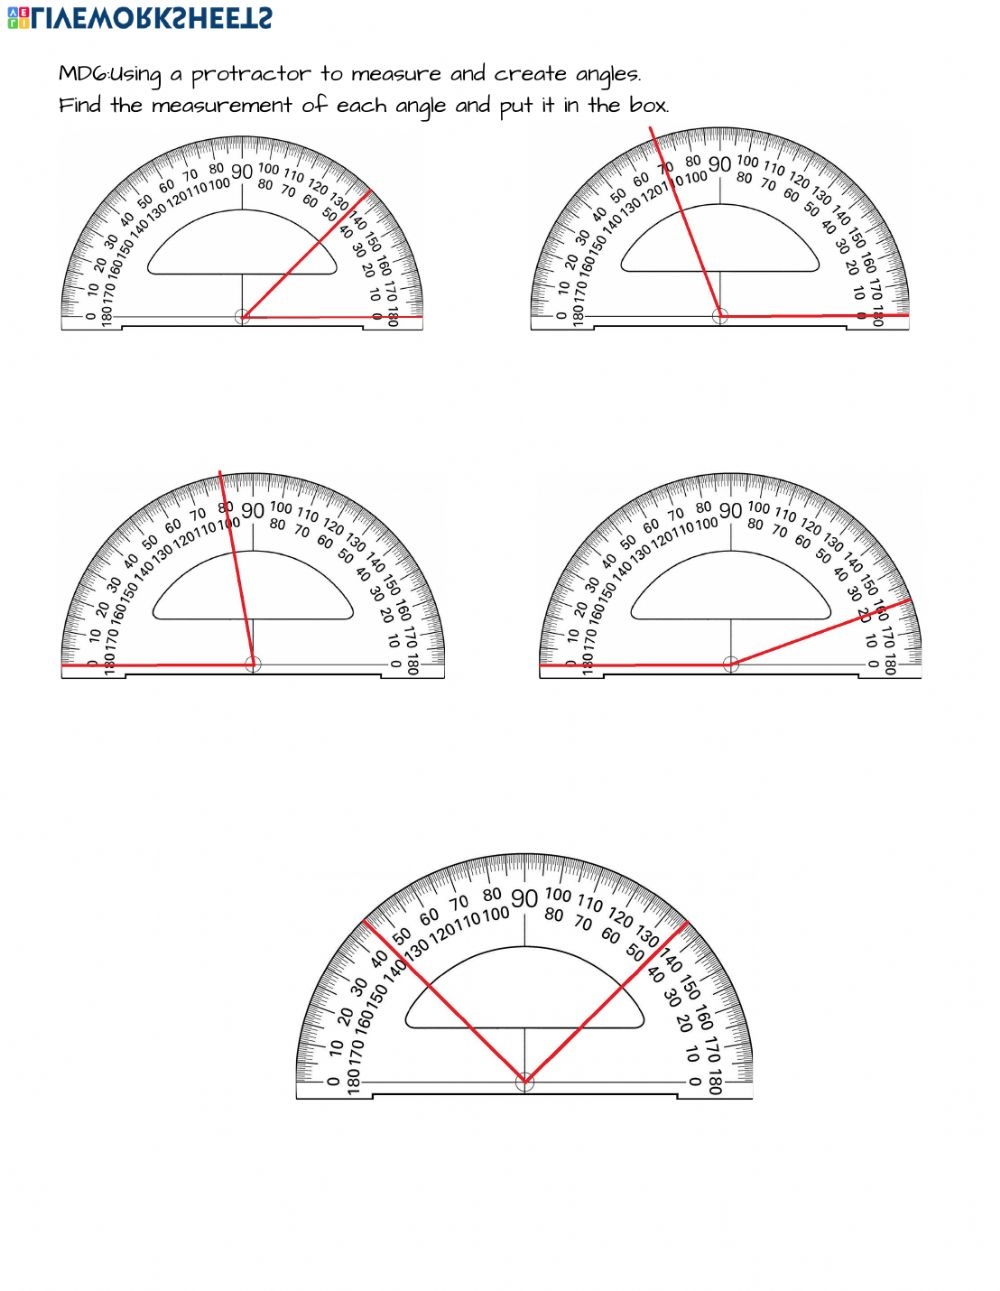 medium resolution of 4.MD.6 Measuring angles with a protractor worksheet